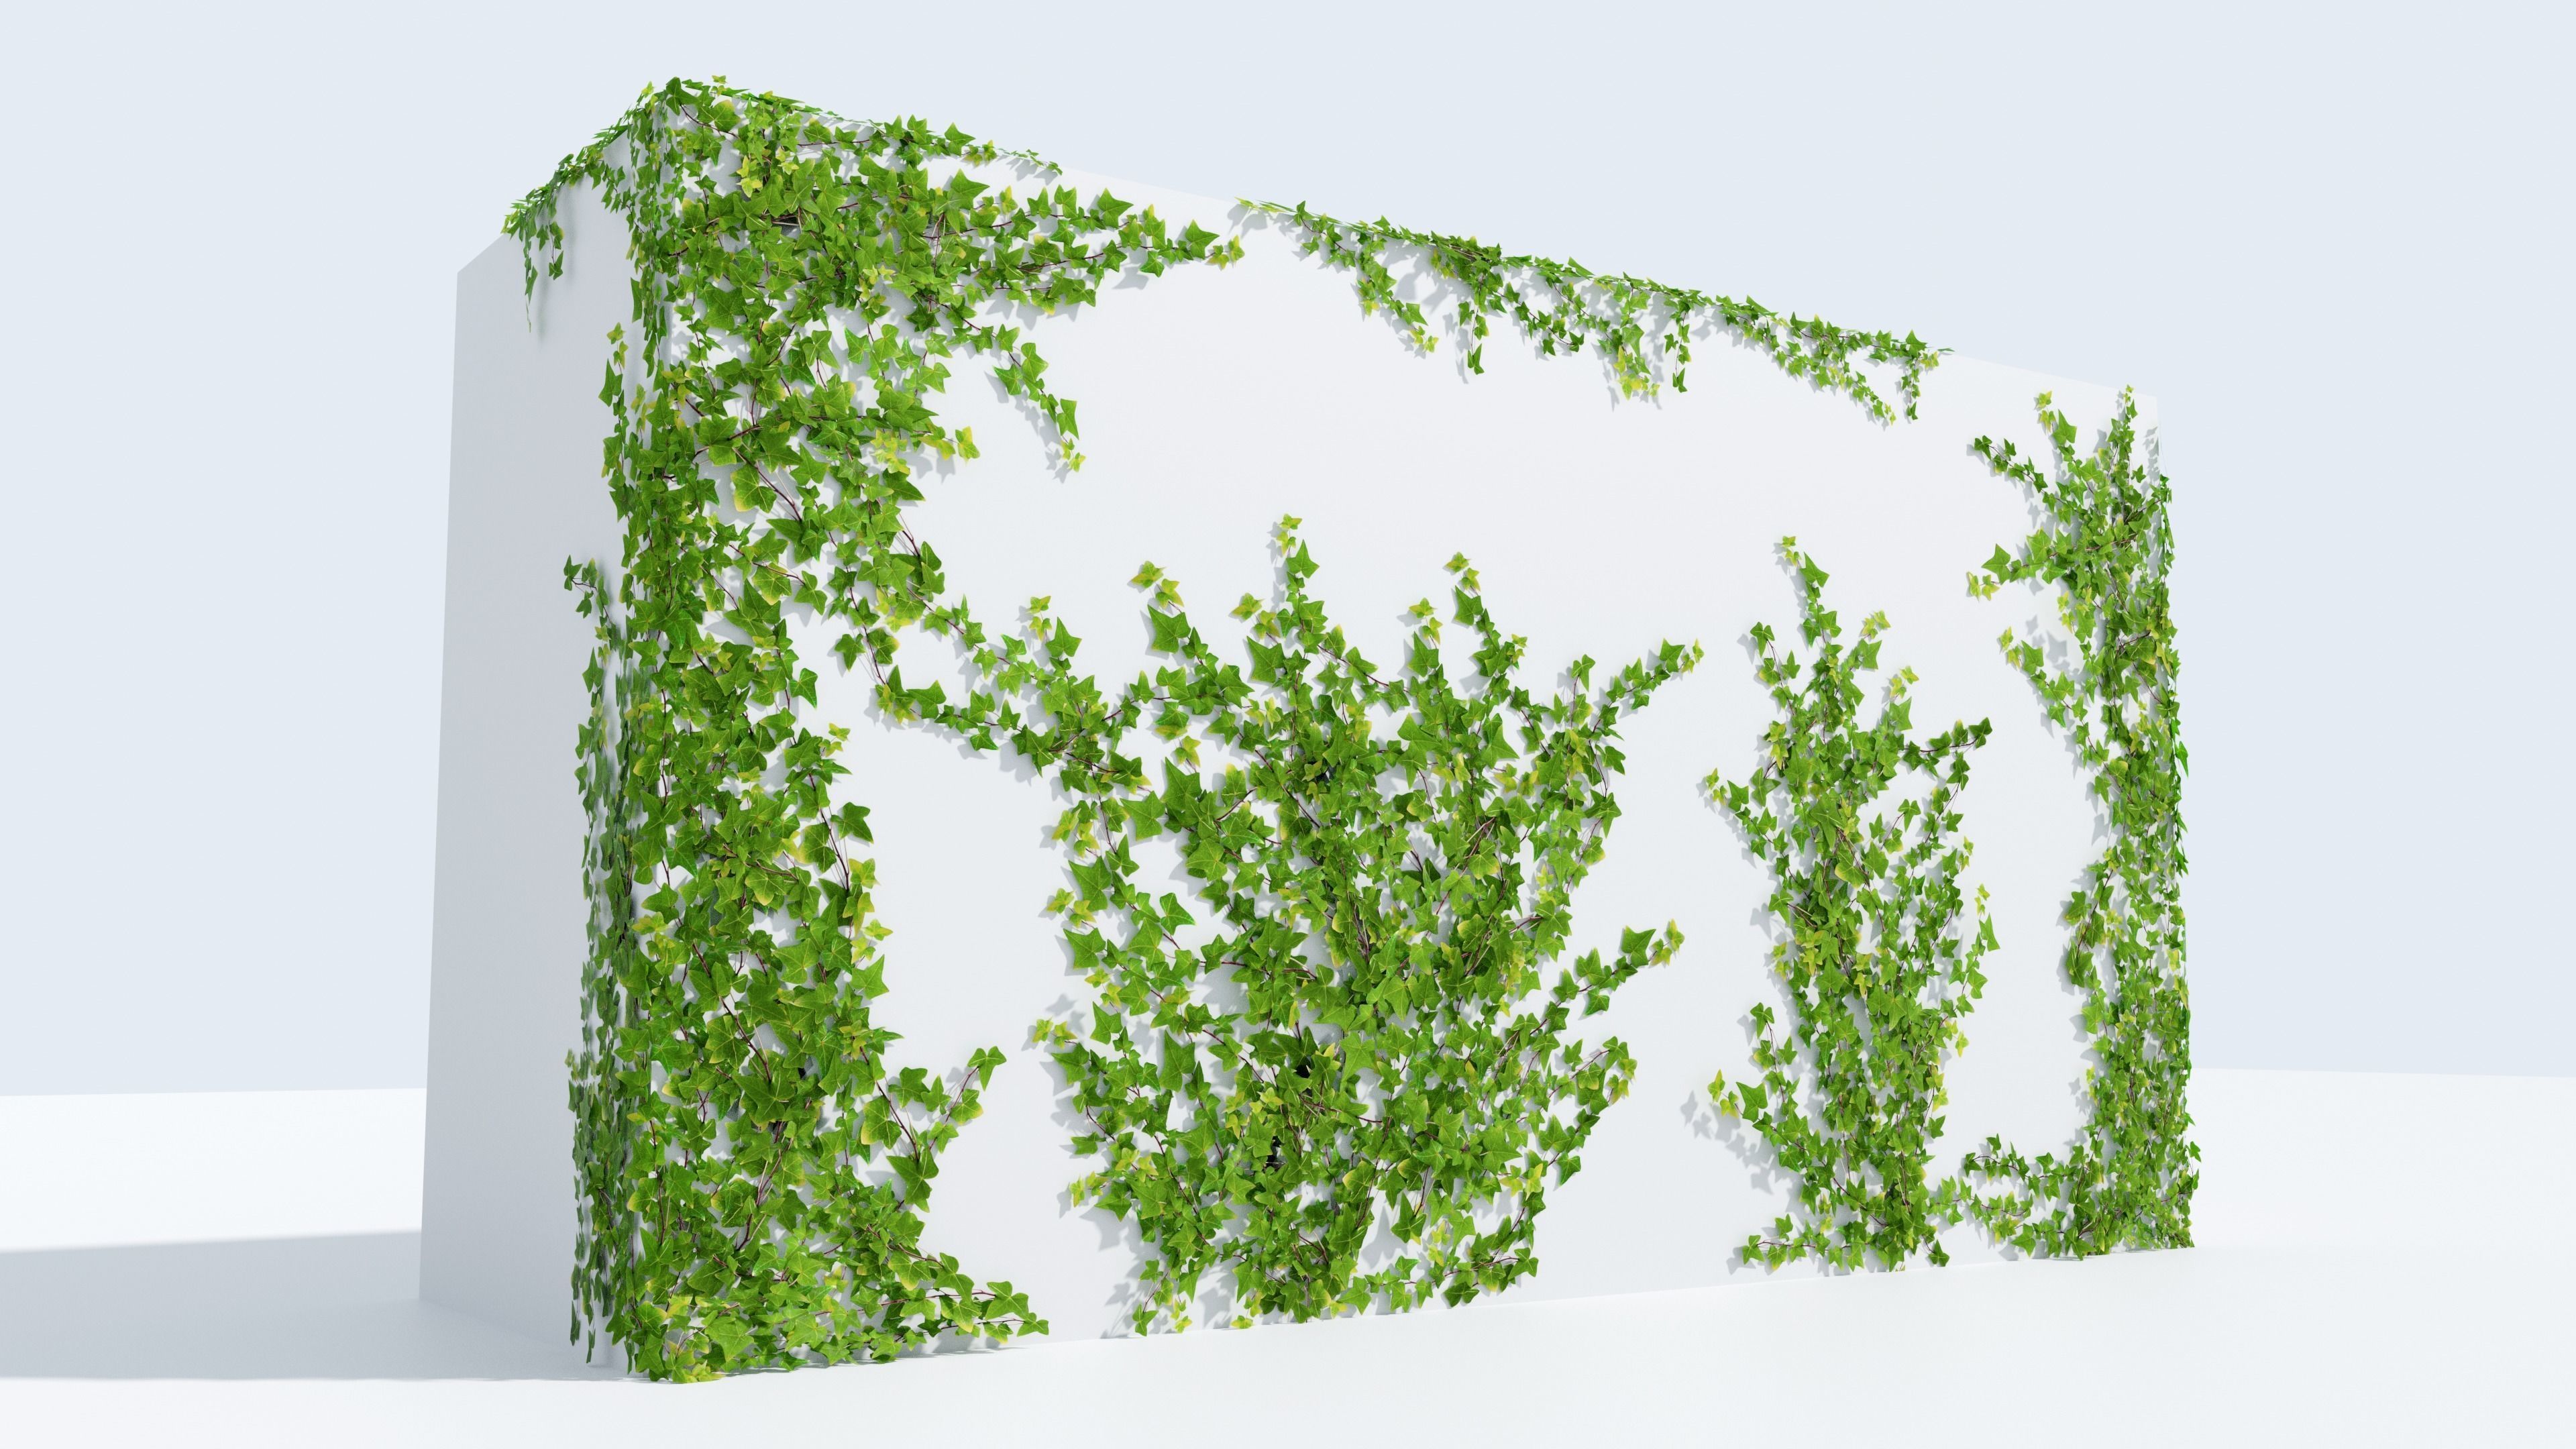 LowPoly Ivy